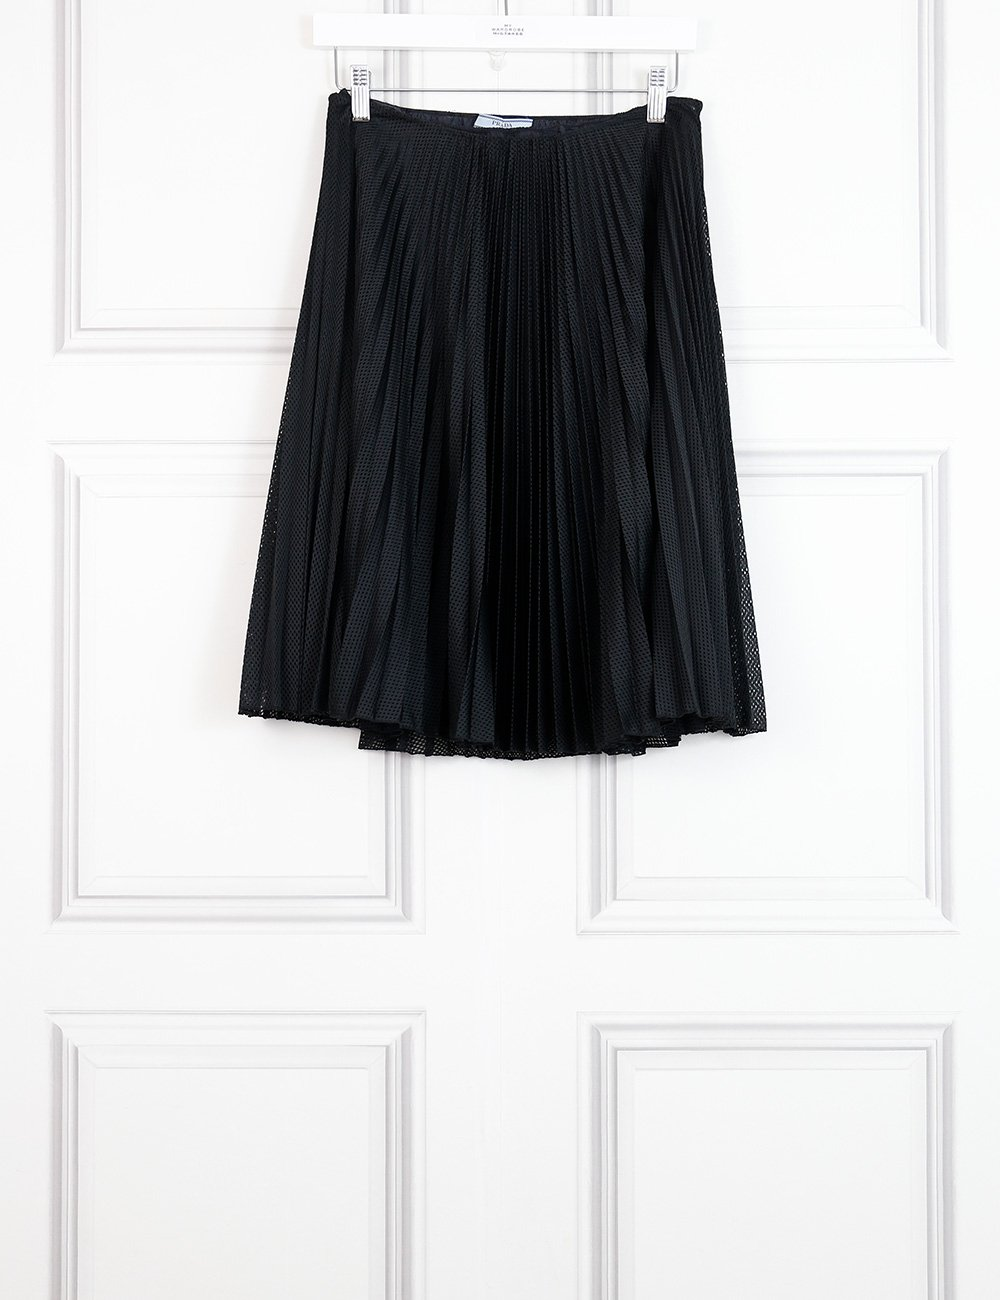 Prada black perforated pleated skirt 8UK- My Wardrobe Mistakes